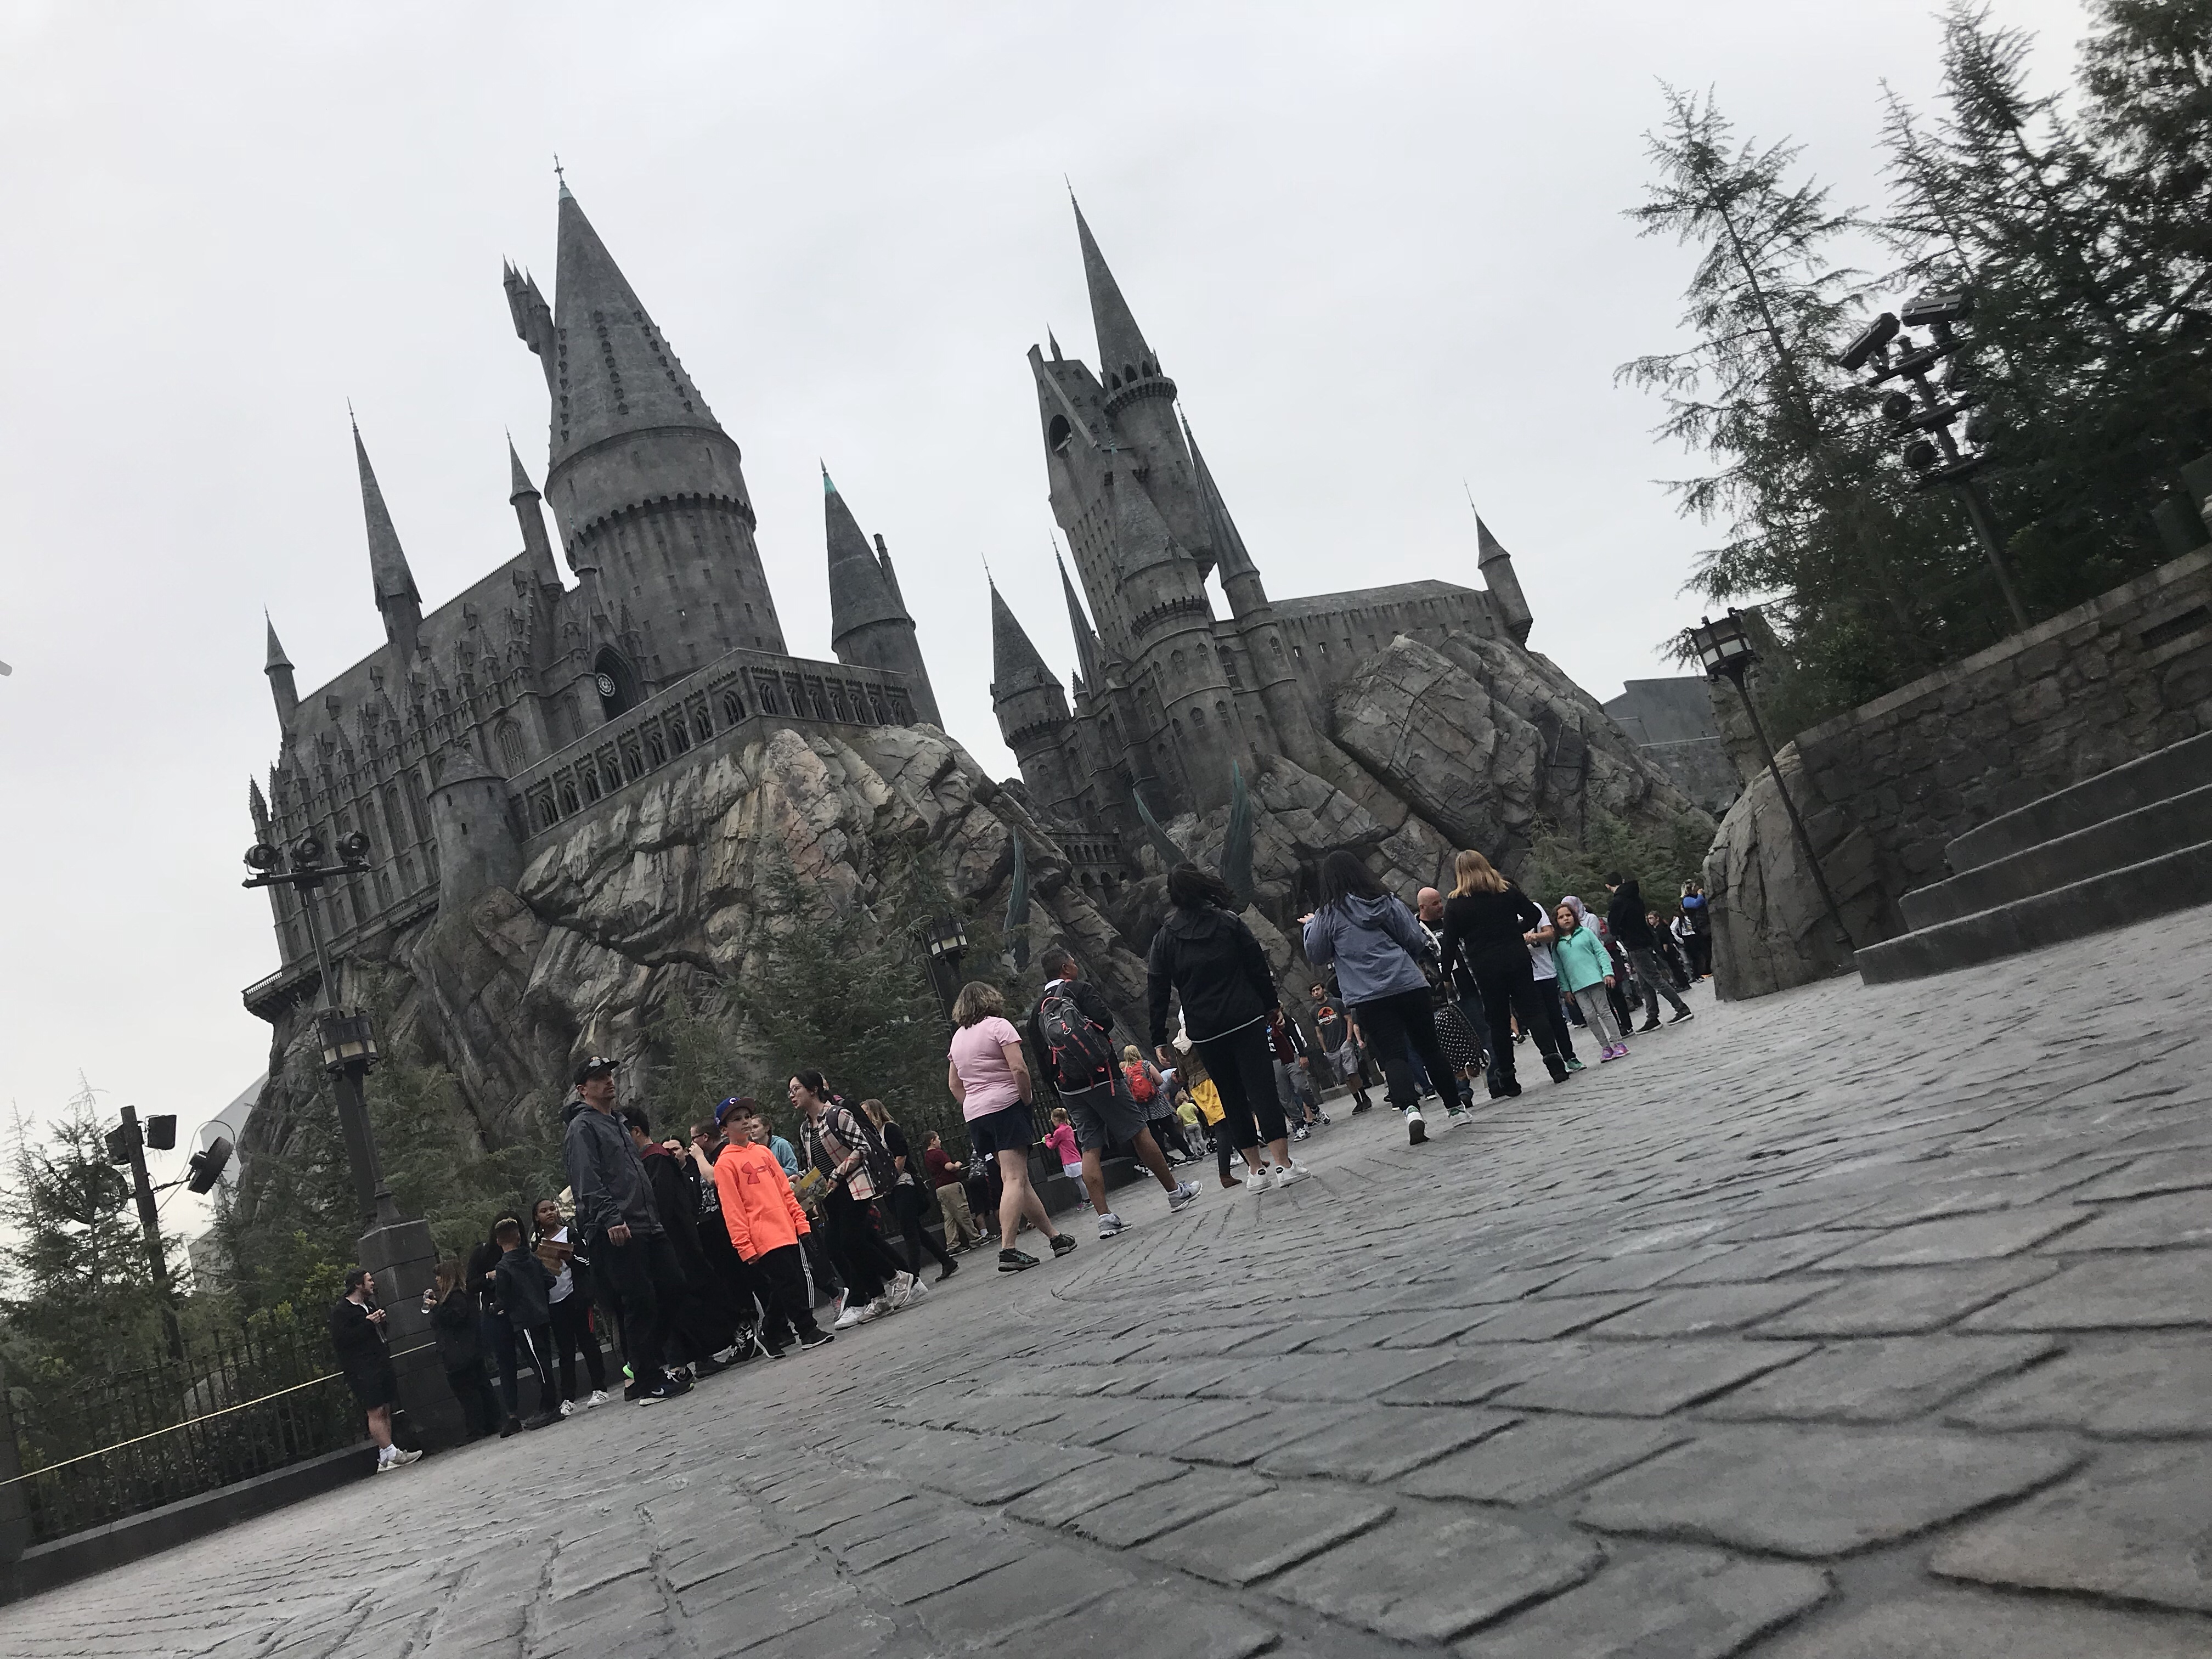 Hollywood's Wizarding World of Harry Potter has new (and the best!) spells